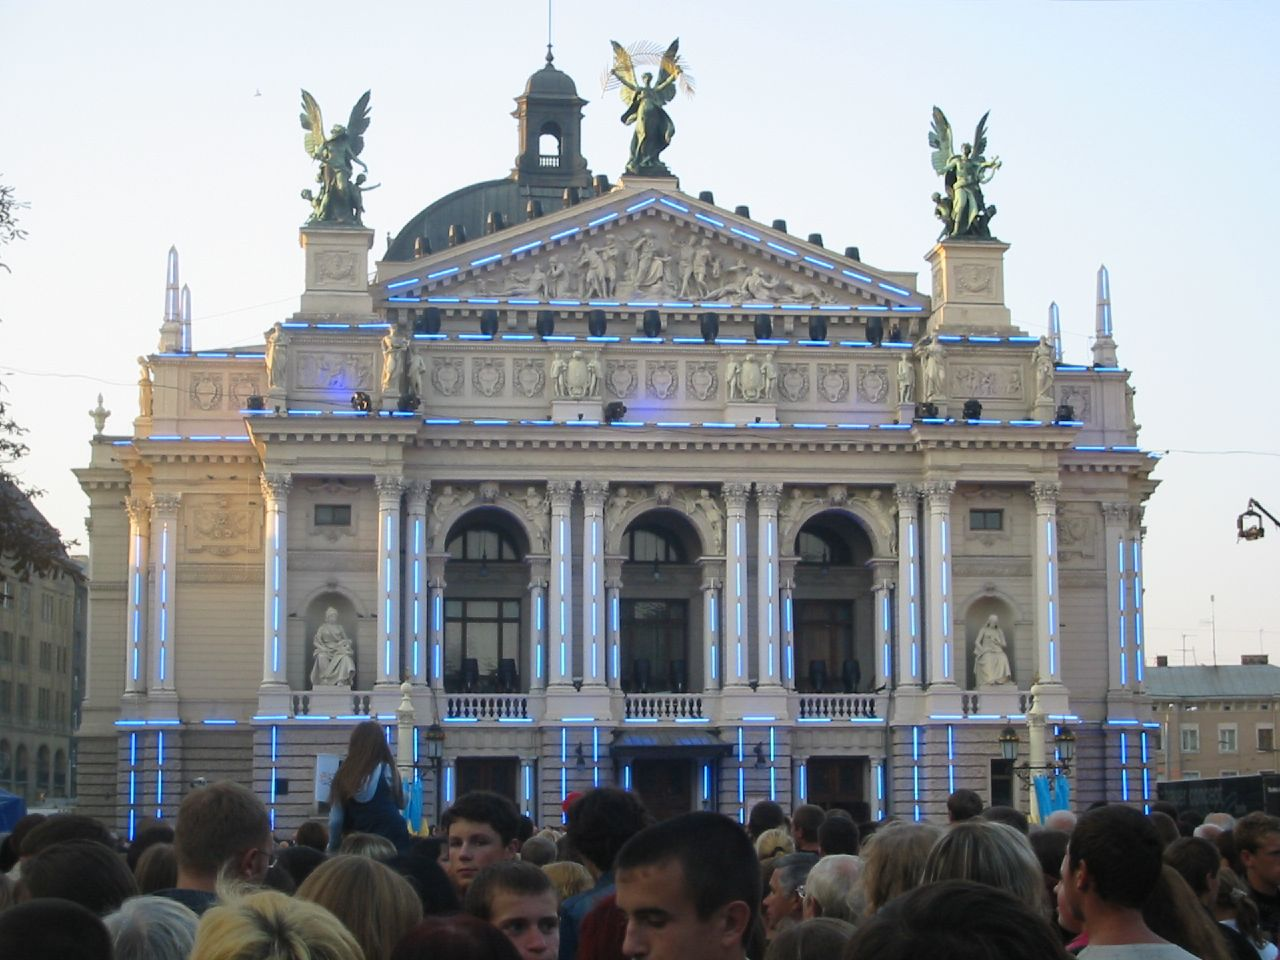 L'viv – the Ensemble of the Historic Centre